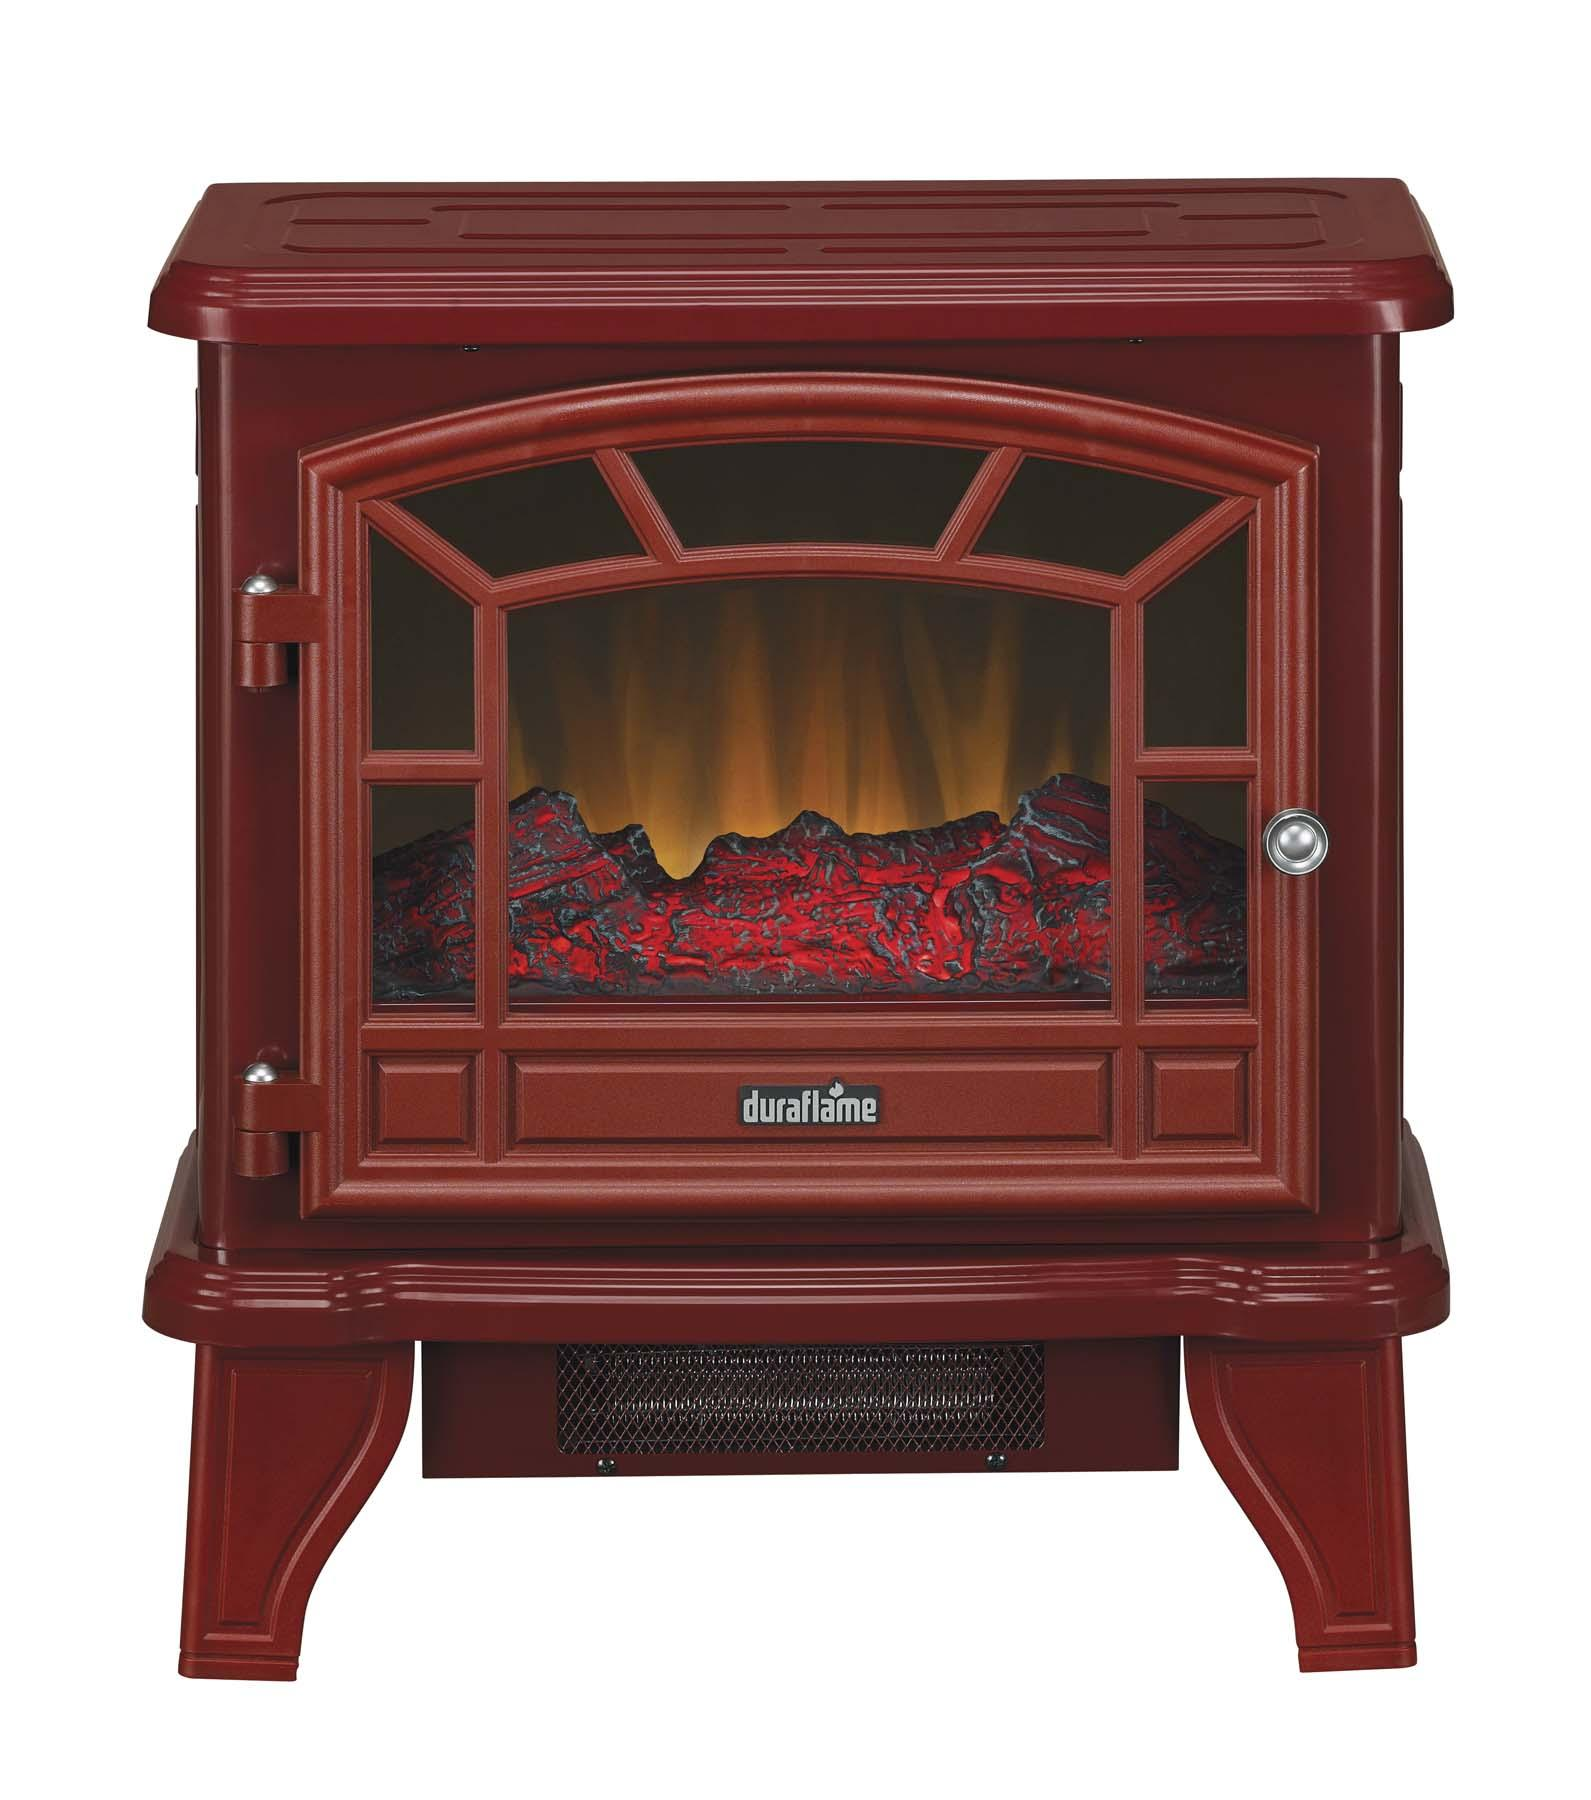 Duraflame Dfs 550 21 Red Stove Heater Red Space Heaters